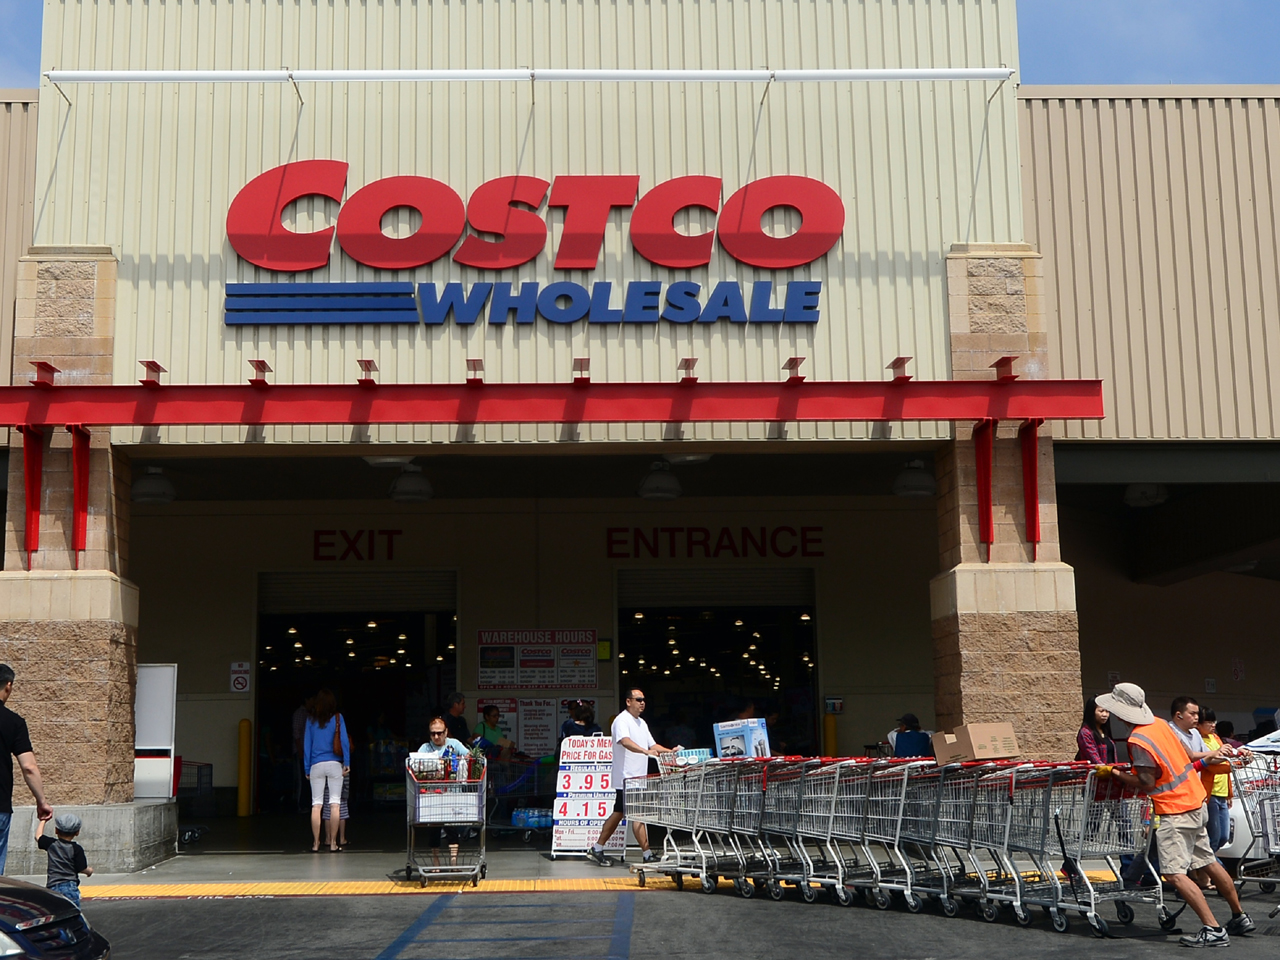 Blue apron costco - Markup Is Never More Than 15 Percent 12 Things About Costco That May Surprise You Cbs News